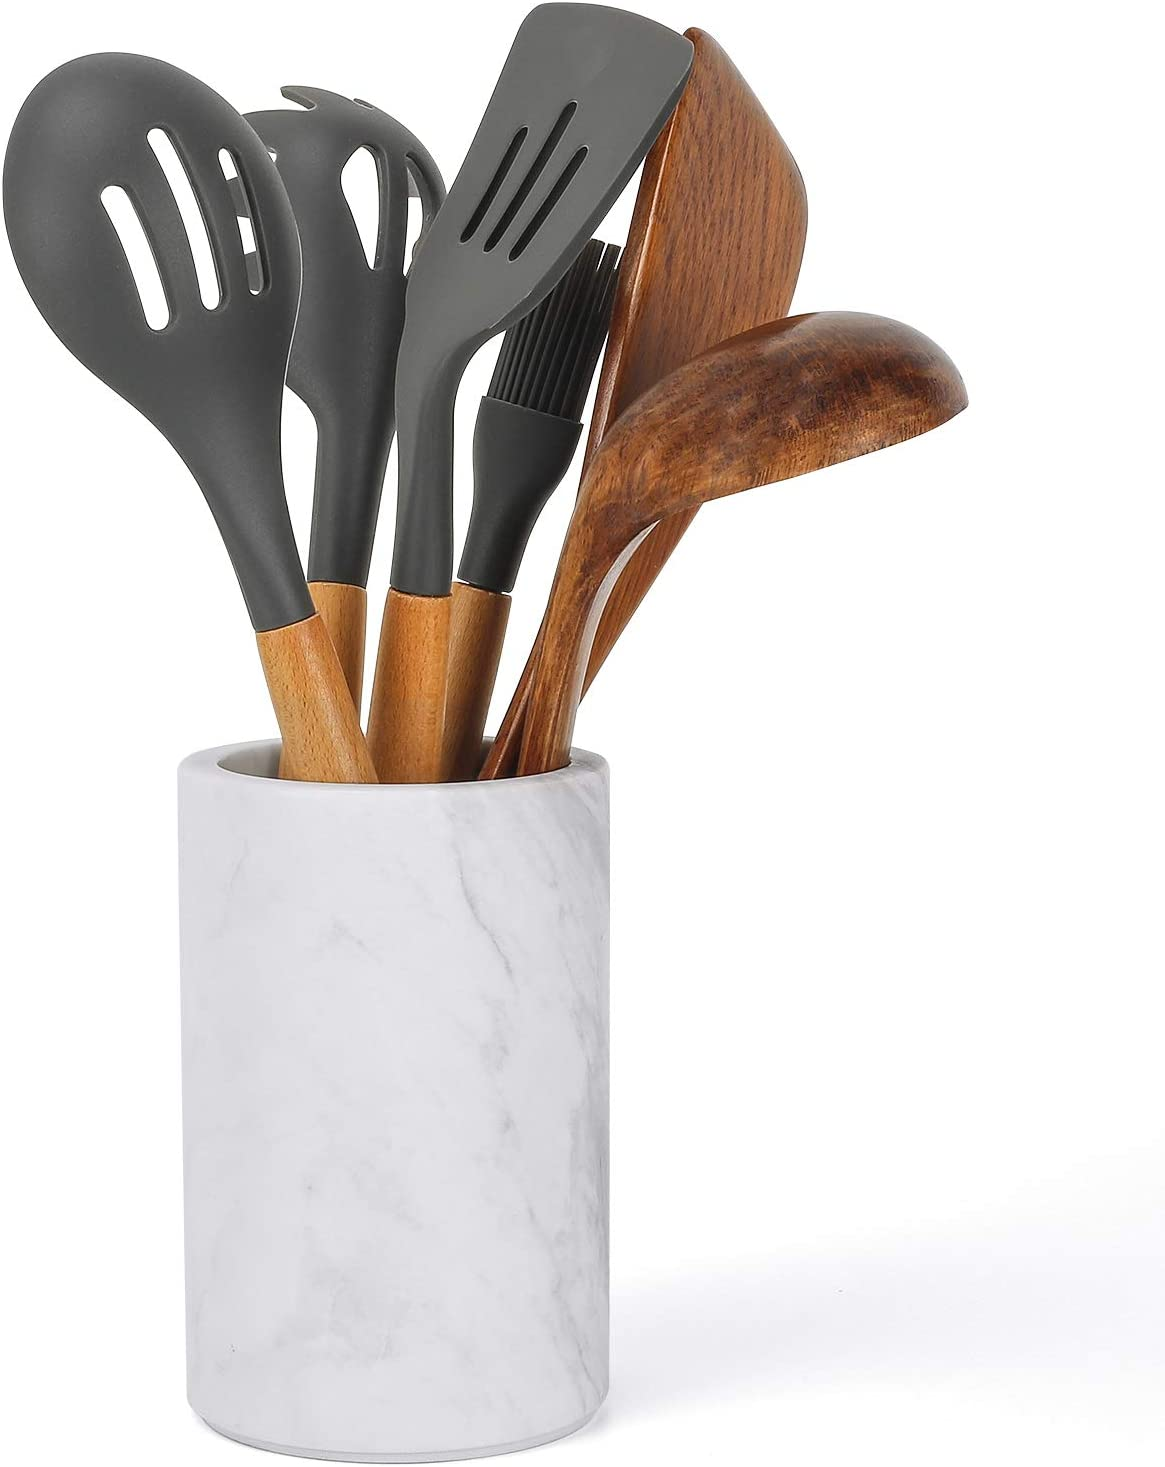 ChasBete Kitchen Utensil Holder for Countertop W Wholesale Natural Our shop most popular Marble